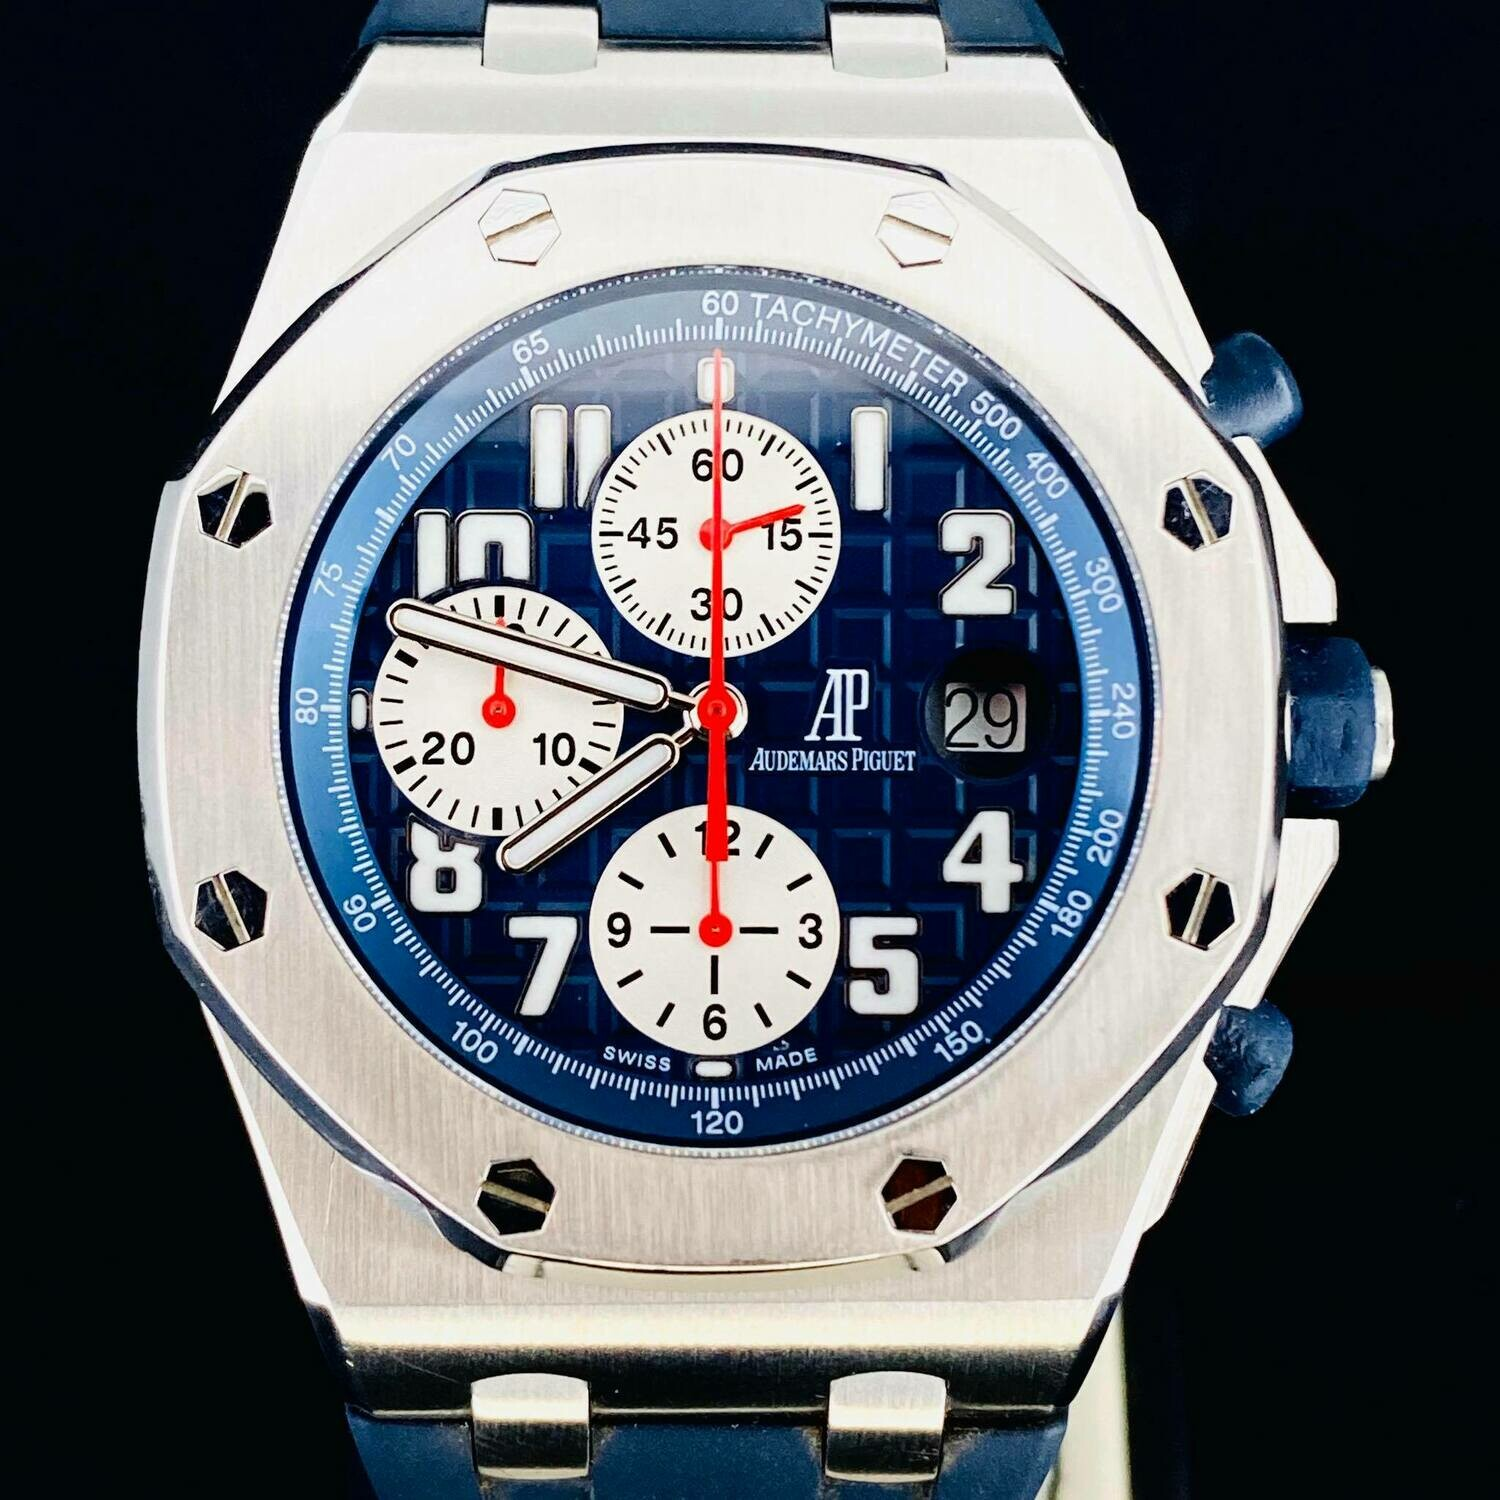 Audemars Piguet Royal Oak Offshore Rue Honore Chronograph Steel 42MM Blue Dial 100 Pieces Limited 2 Straps